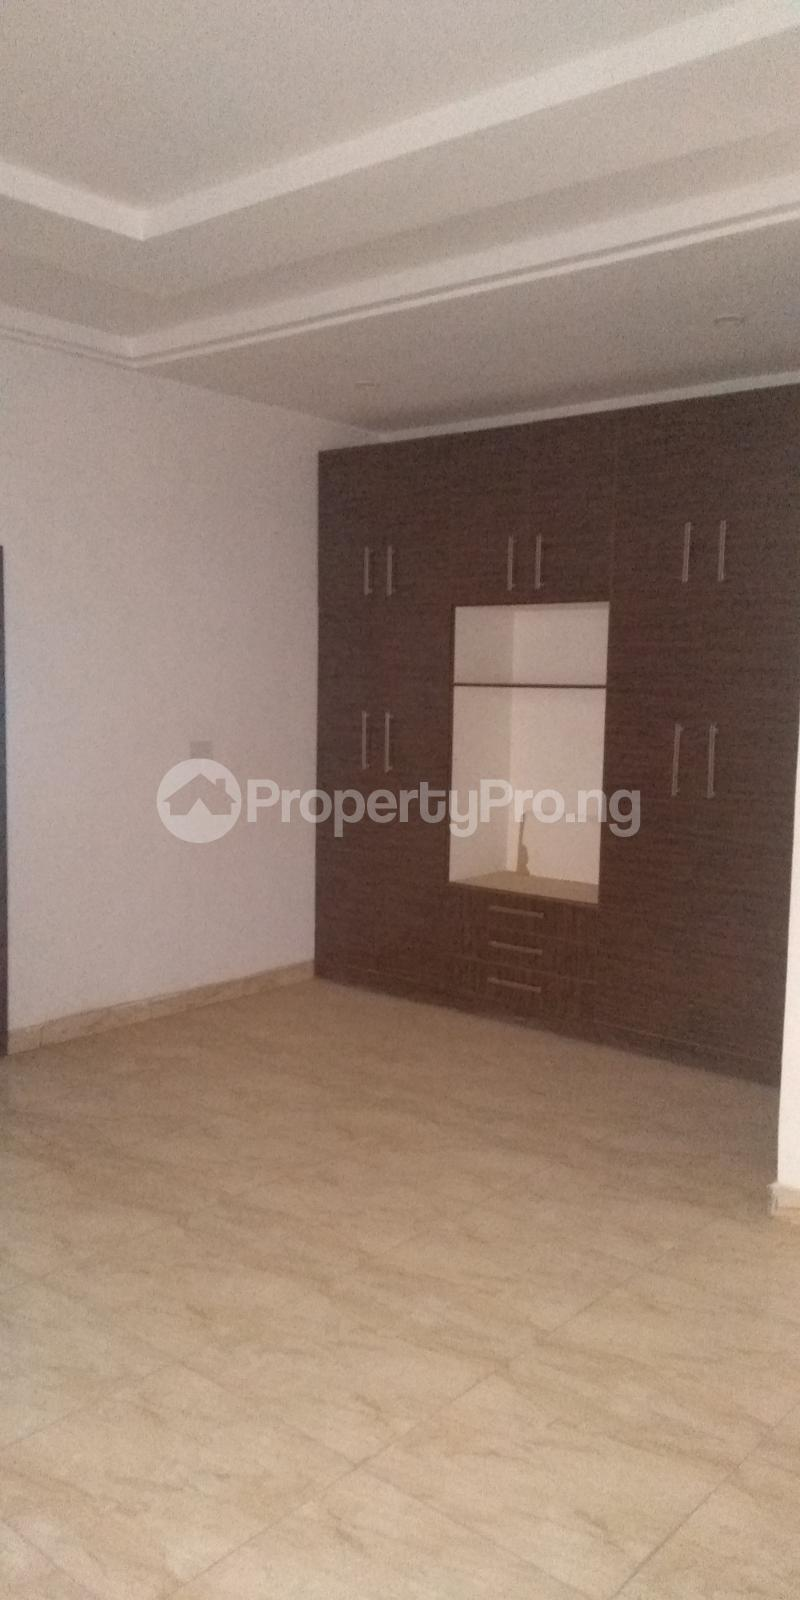 5 bedroom Flat / Apartment for sale Life Camp Abuja - 1